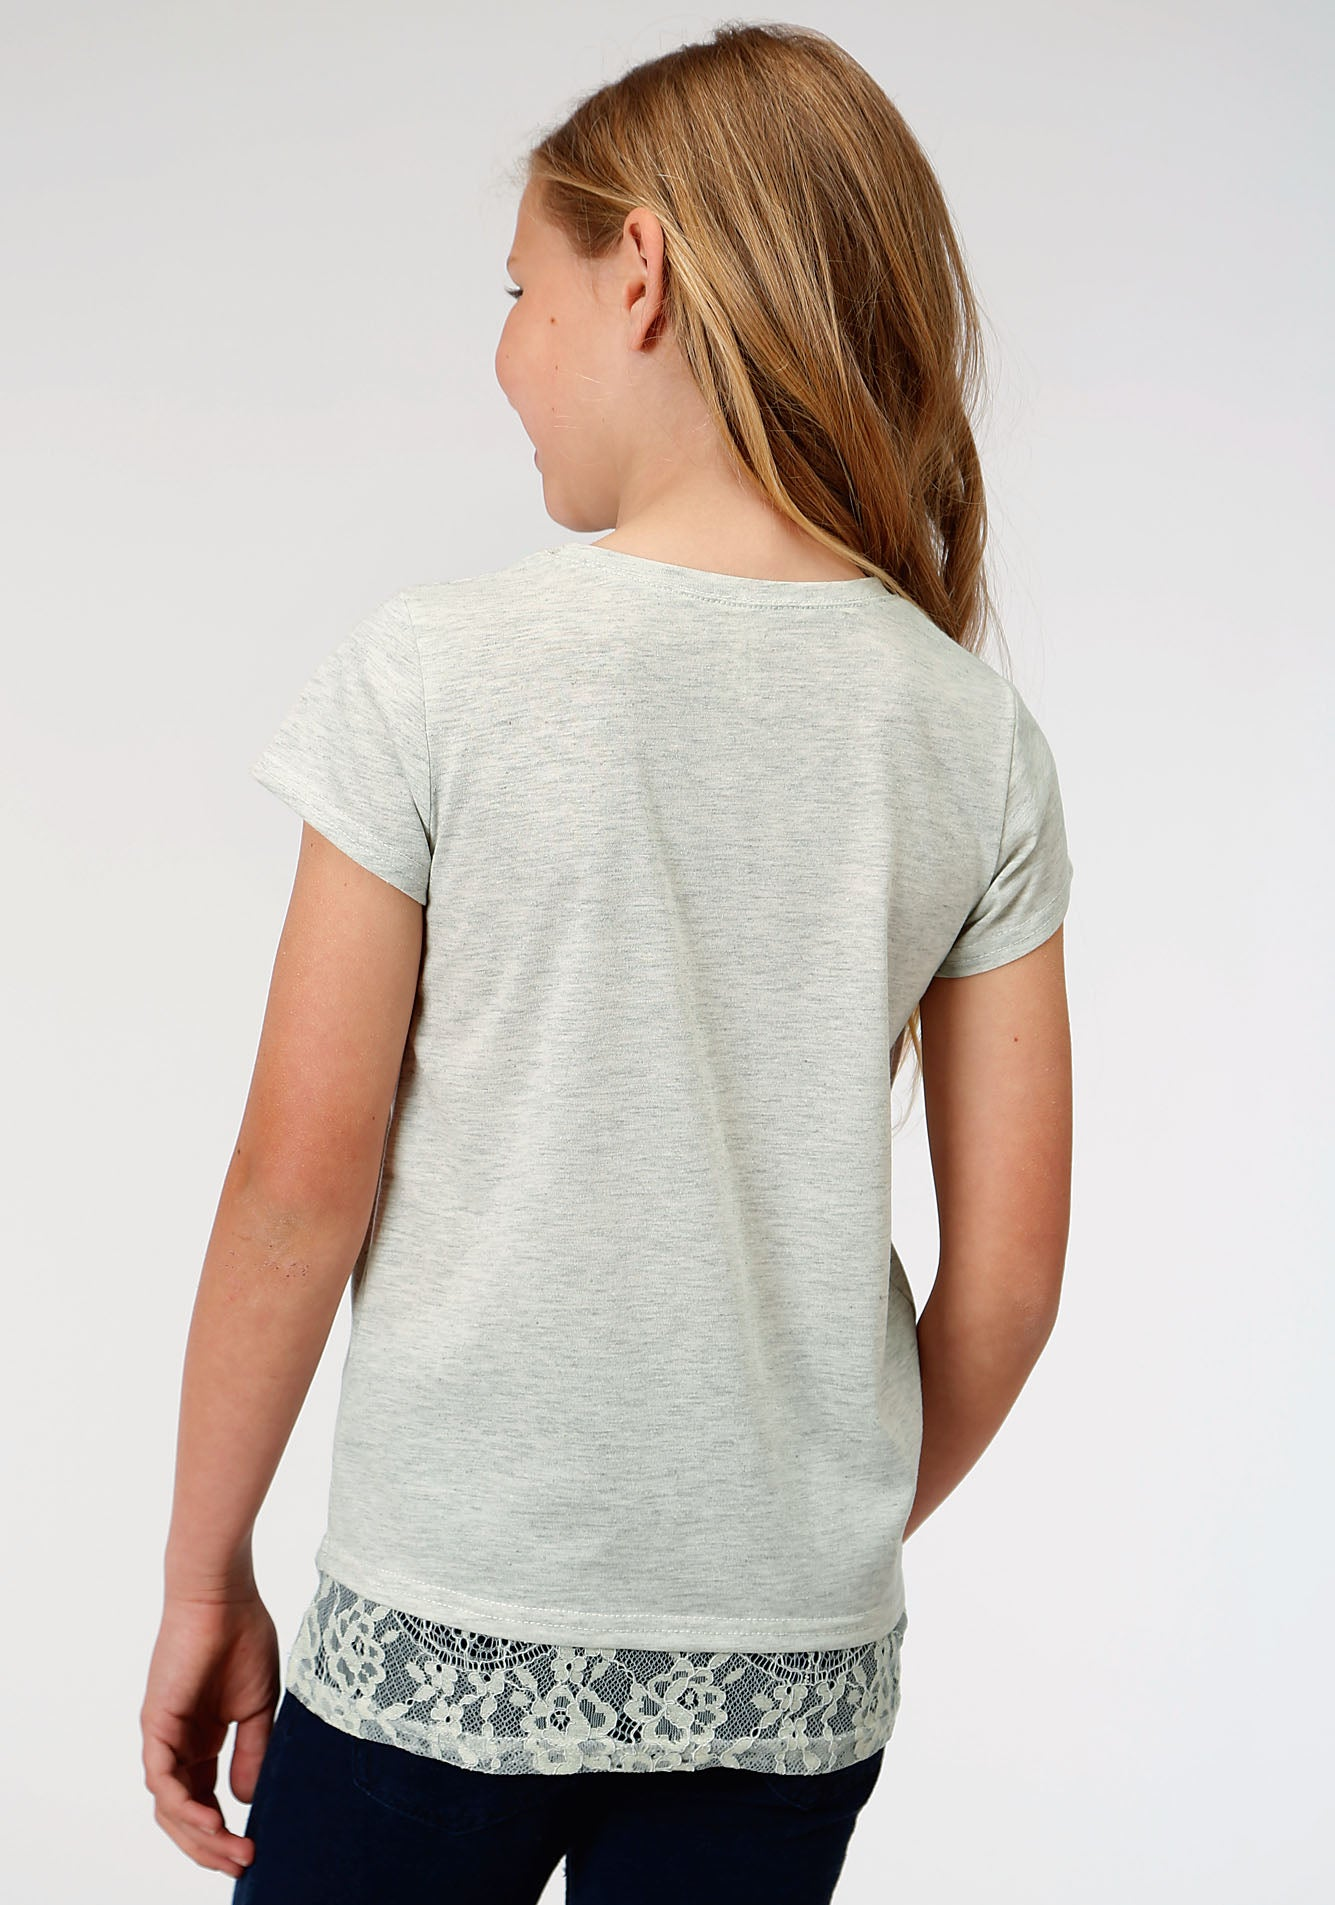 ROPER GIRLS GREY 00134 POLY RAYON JERSEY TEE FIVE STAR GIRLS SHORT SLEEVE